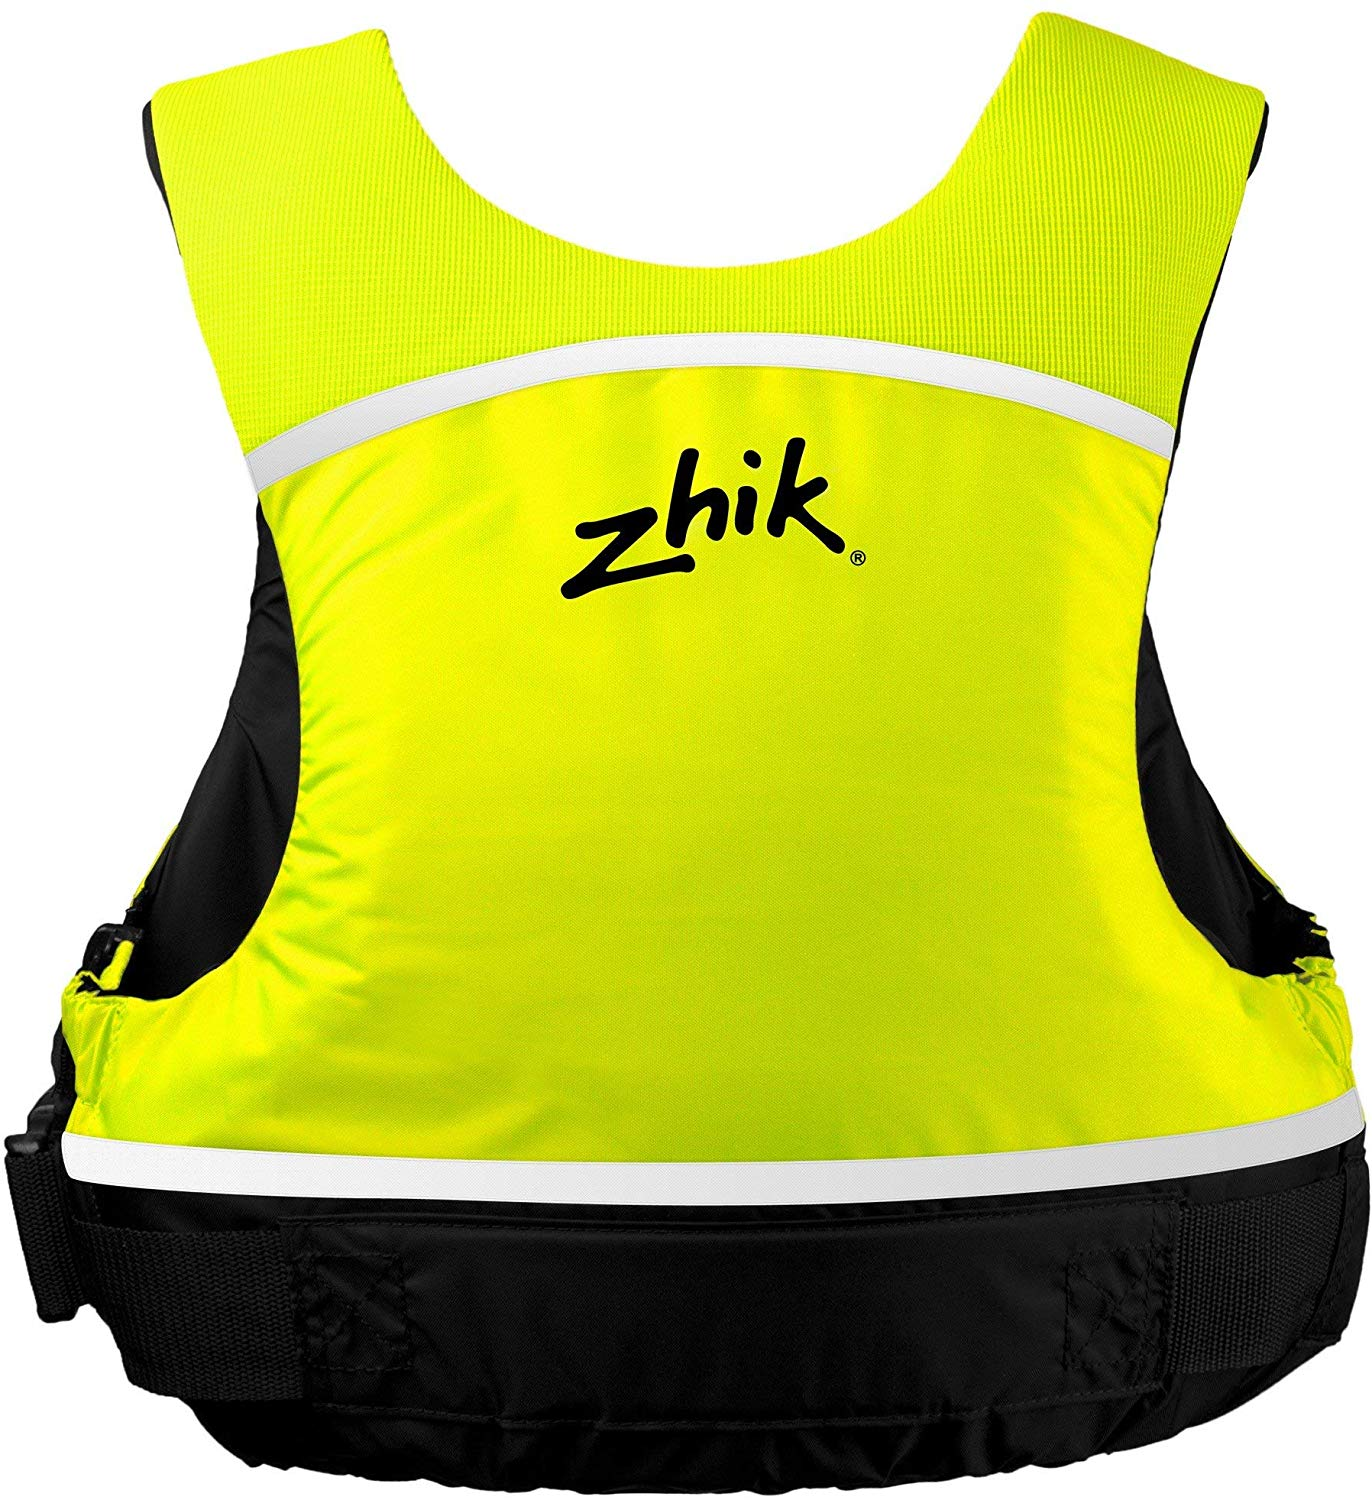 Best Zhik Life Jacket 2020 – Price & Review